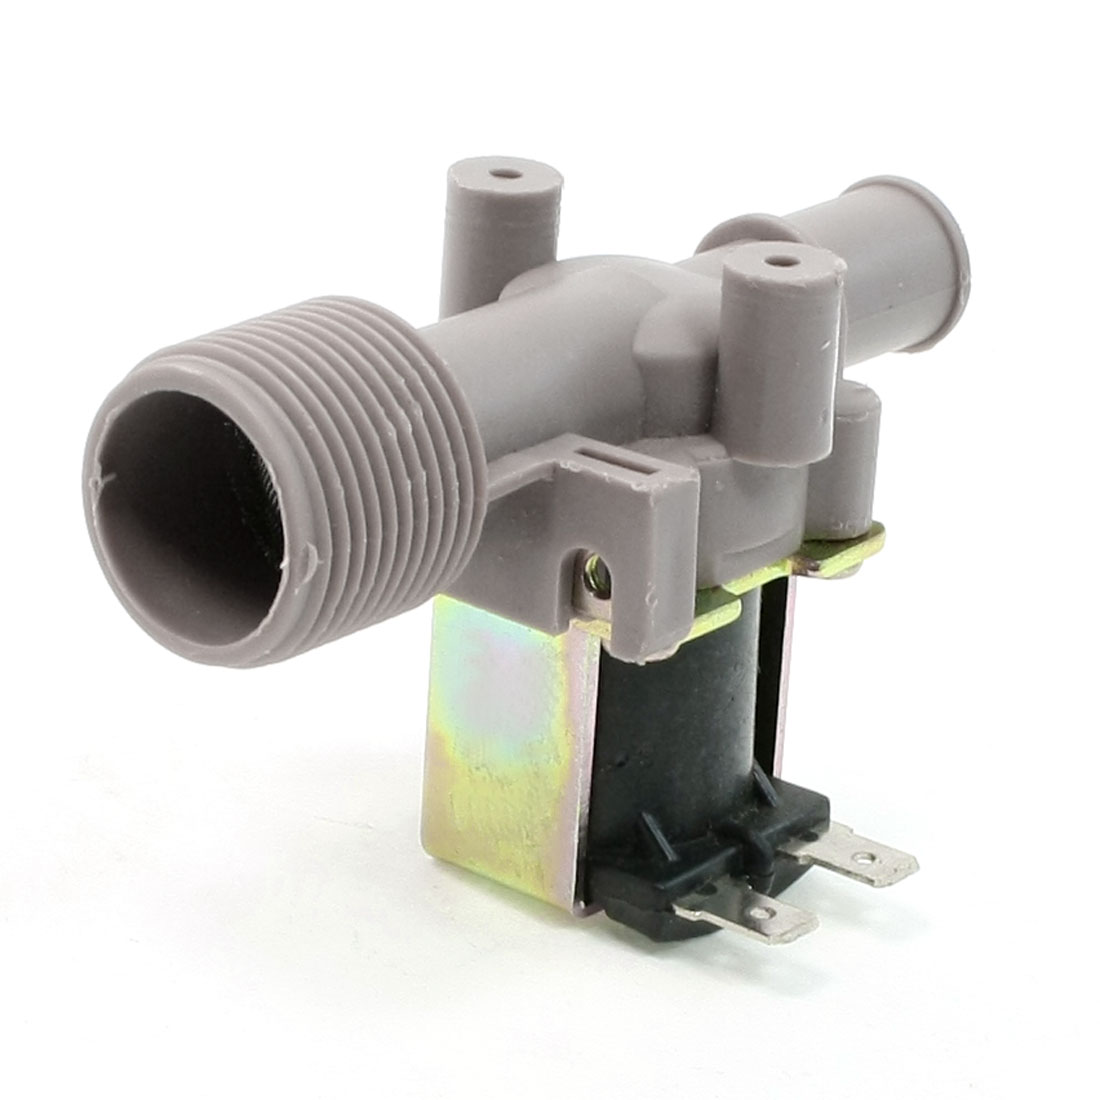 AC 220V 26mm Thread Dia Water Inlet Solenoid Valve for Washing Machine